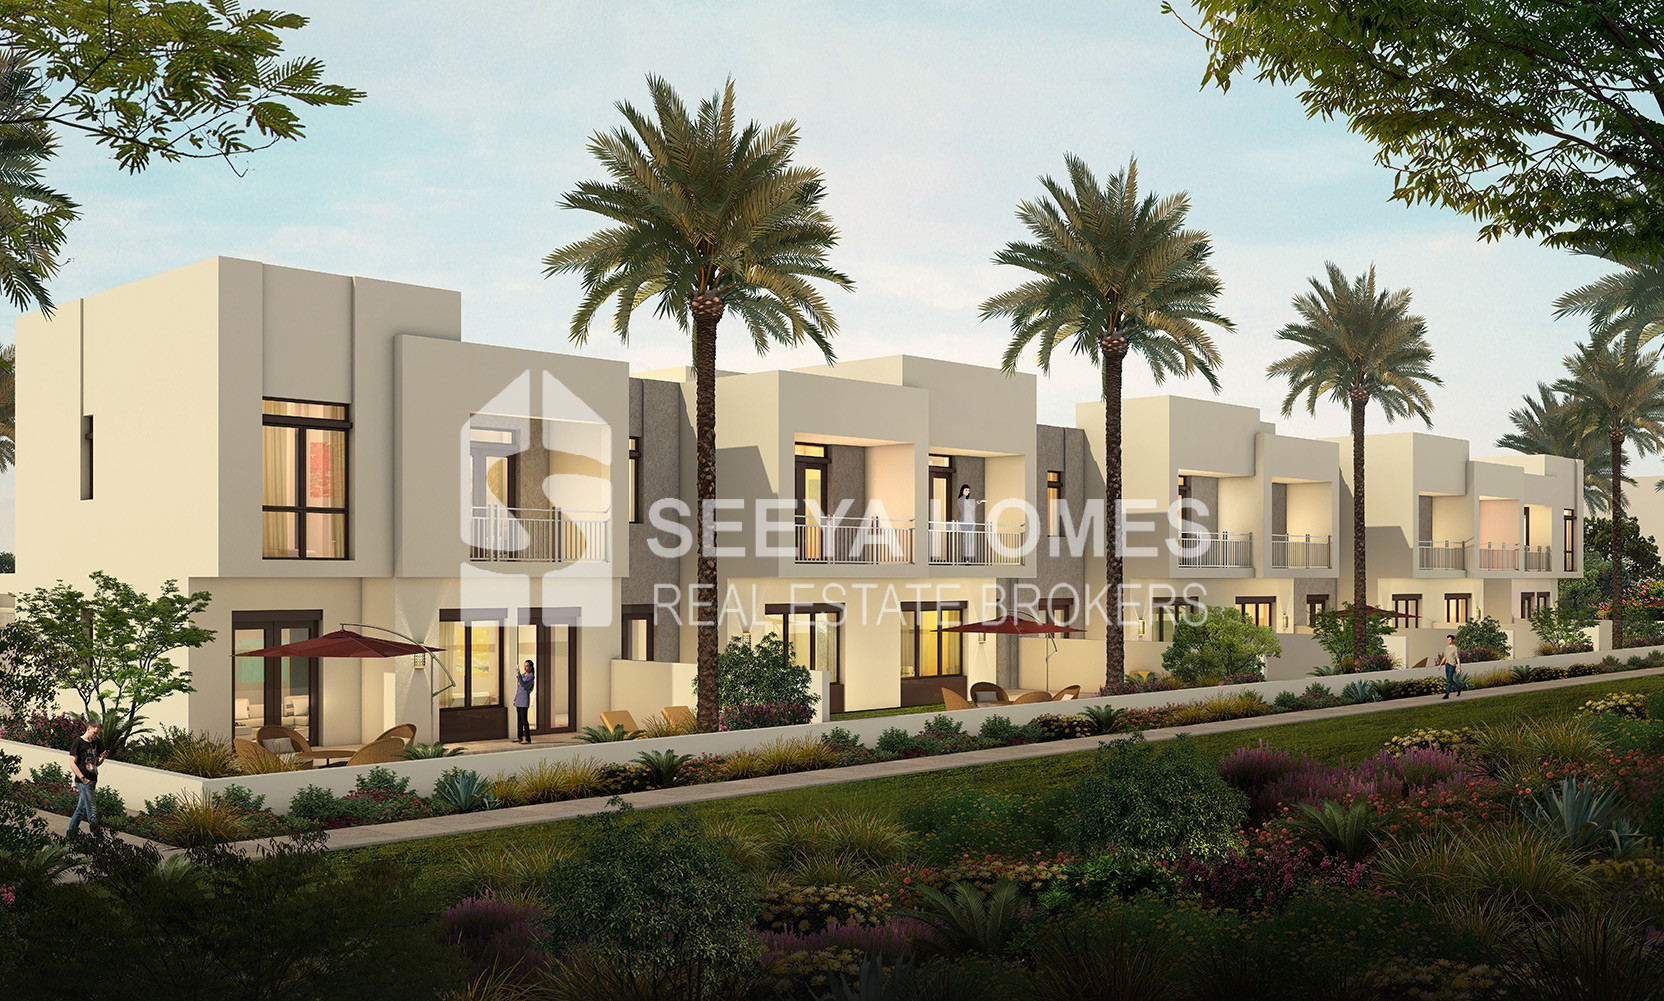 4 BR + Maid Townhouses   Just 5% Down Payment